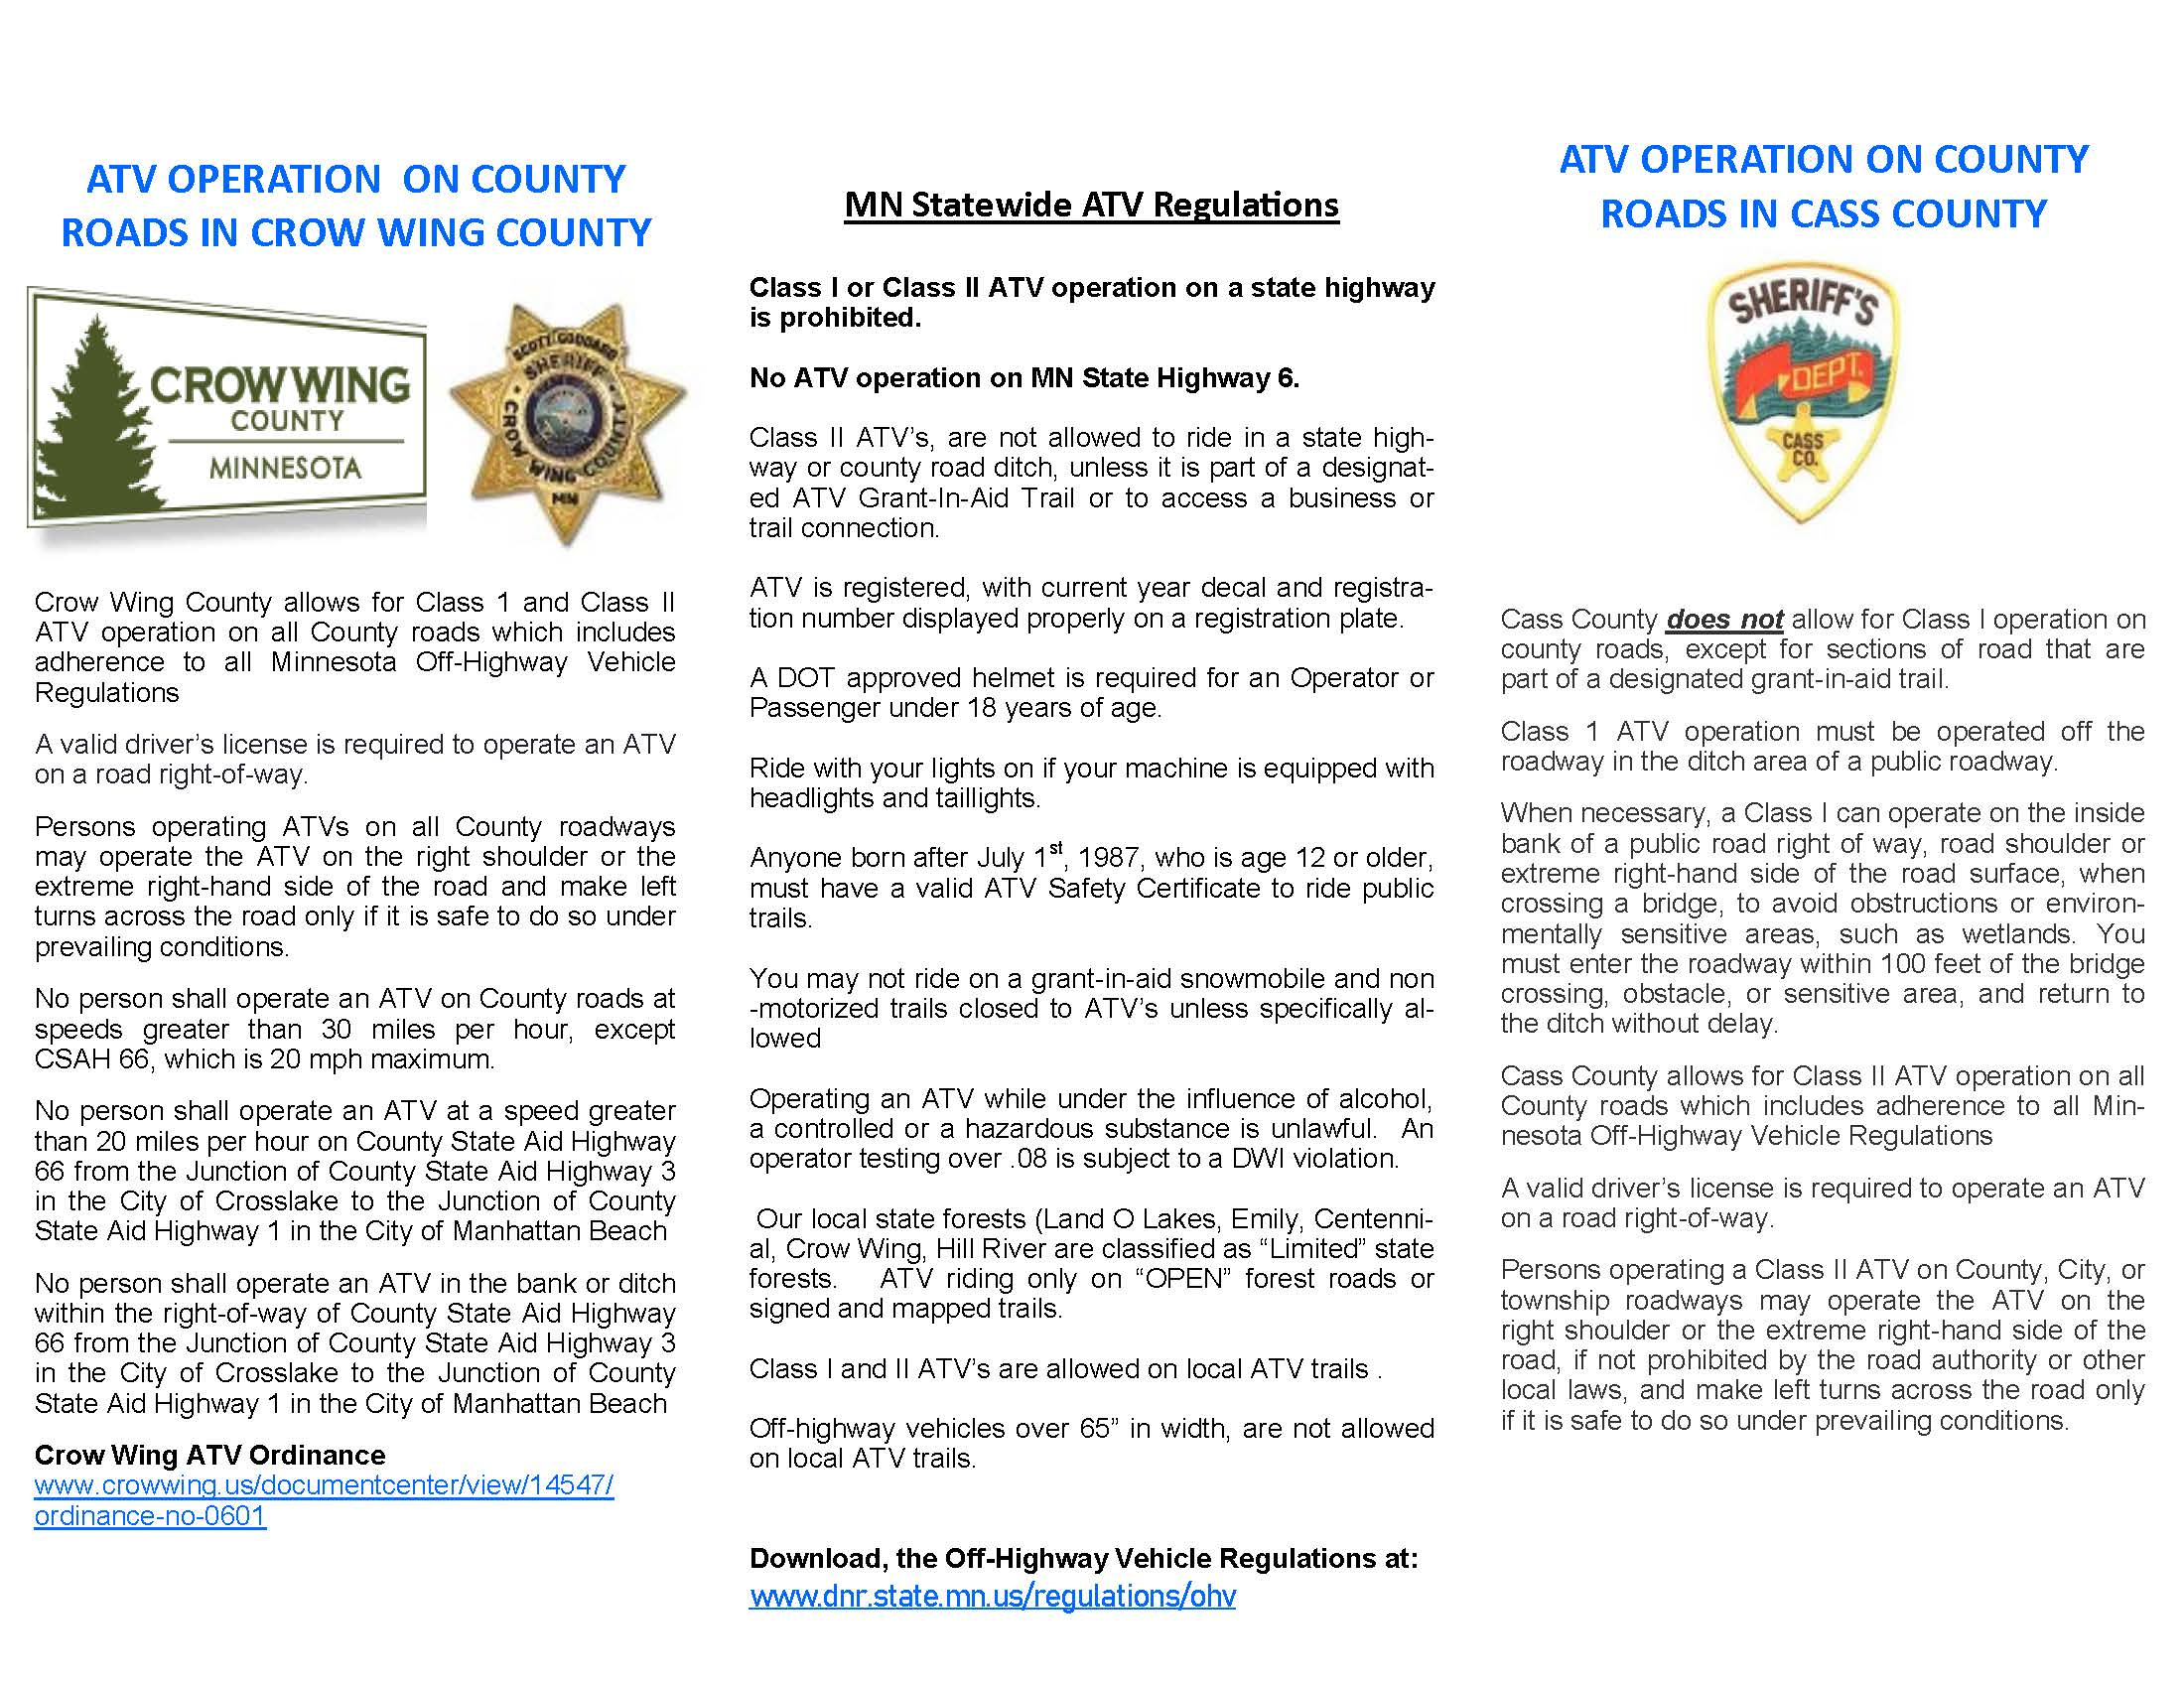 ATV Safety tips page 2